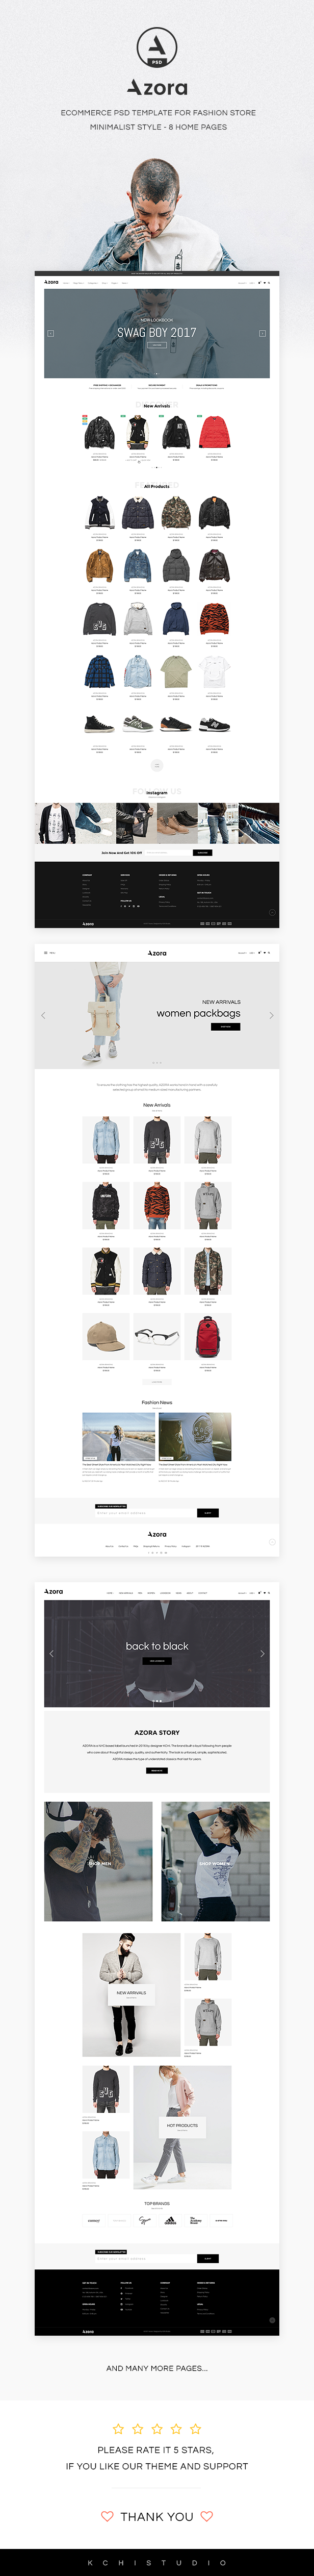 Azora - Ecommerce PSD Template For Fashion Store - 1